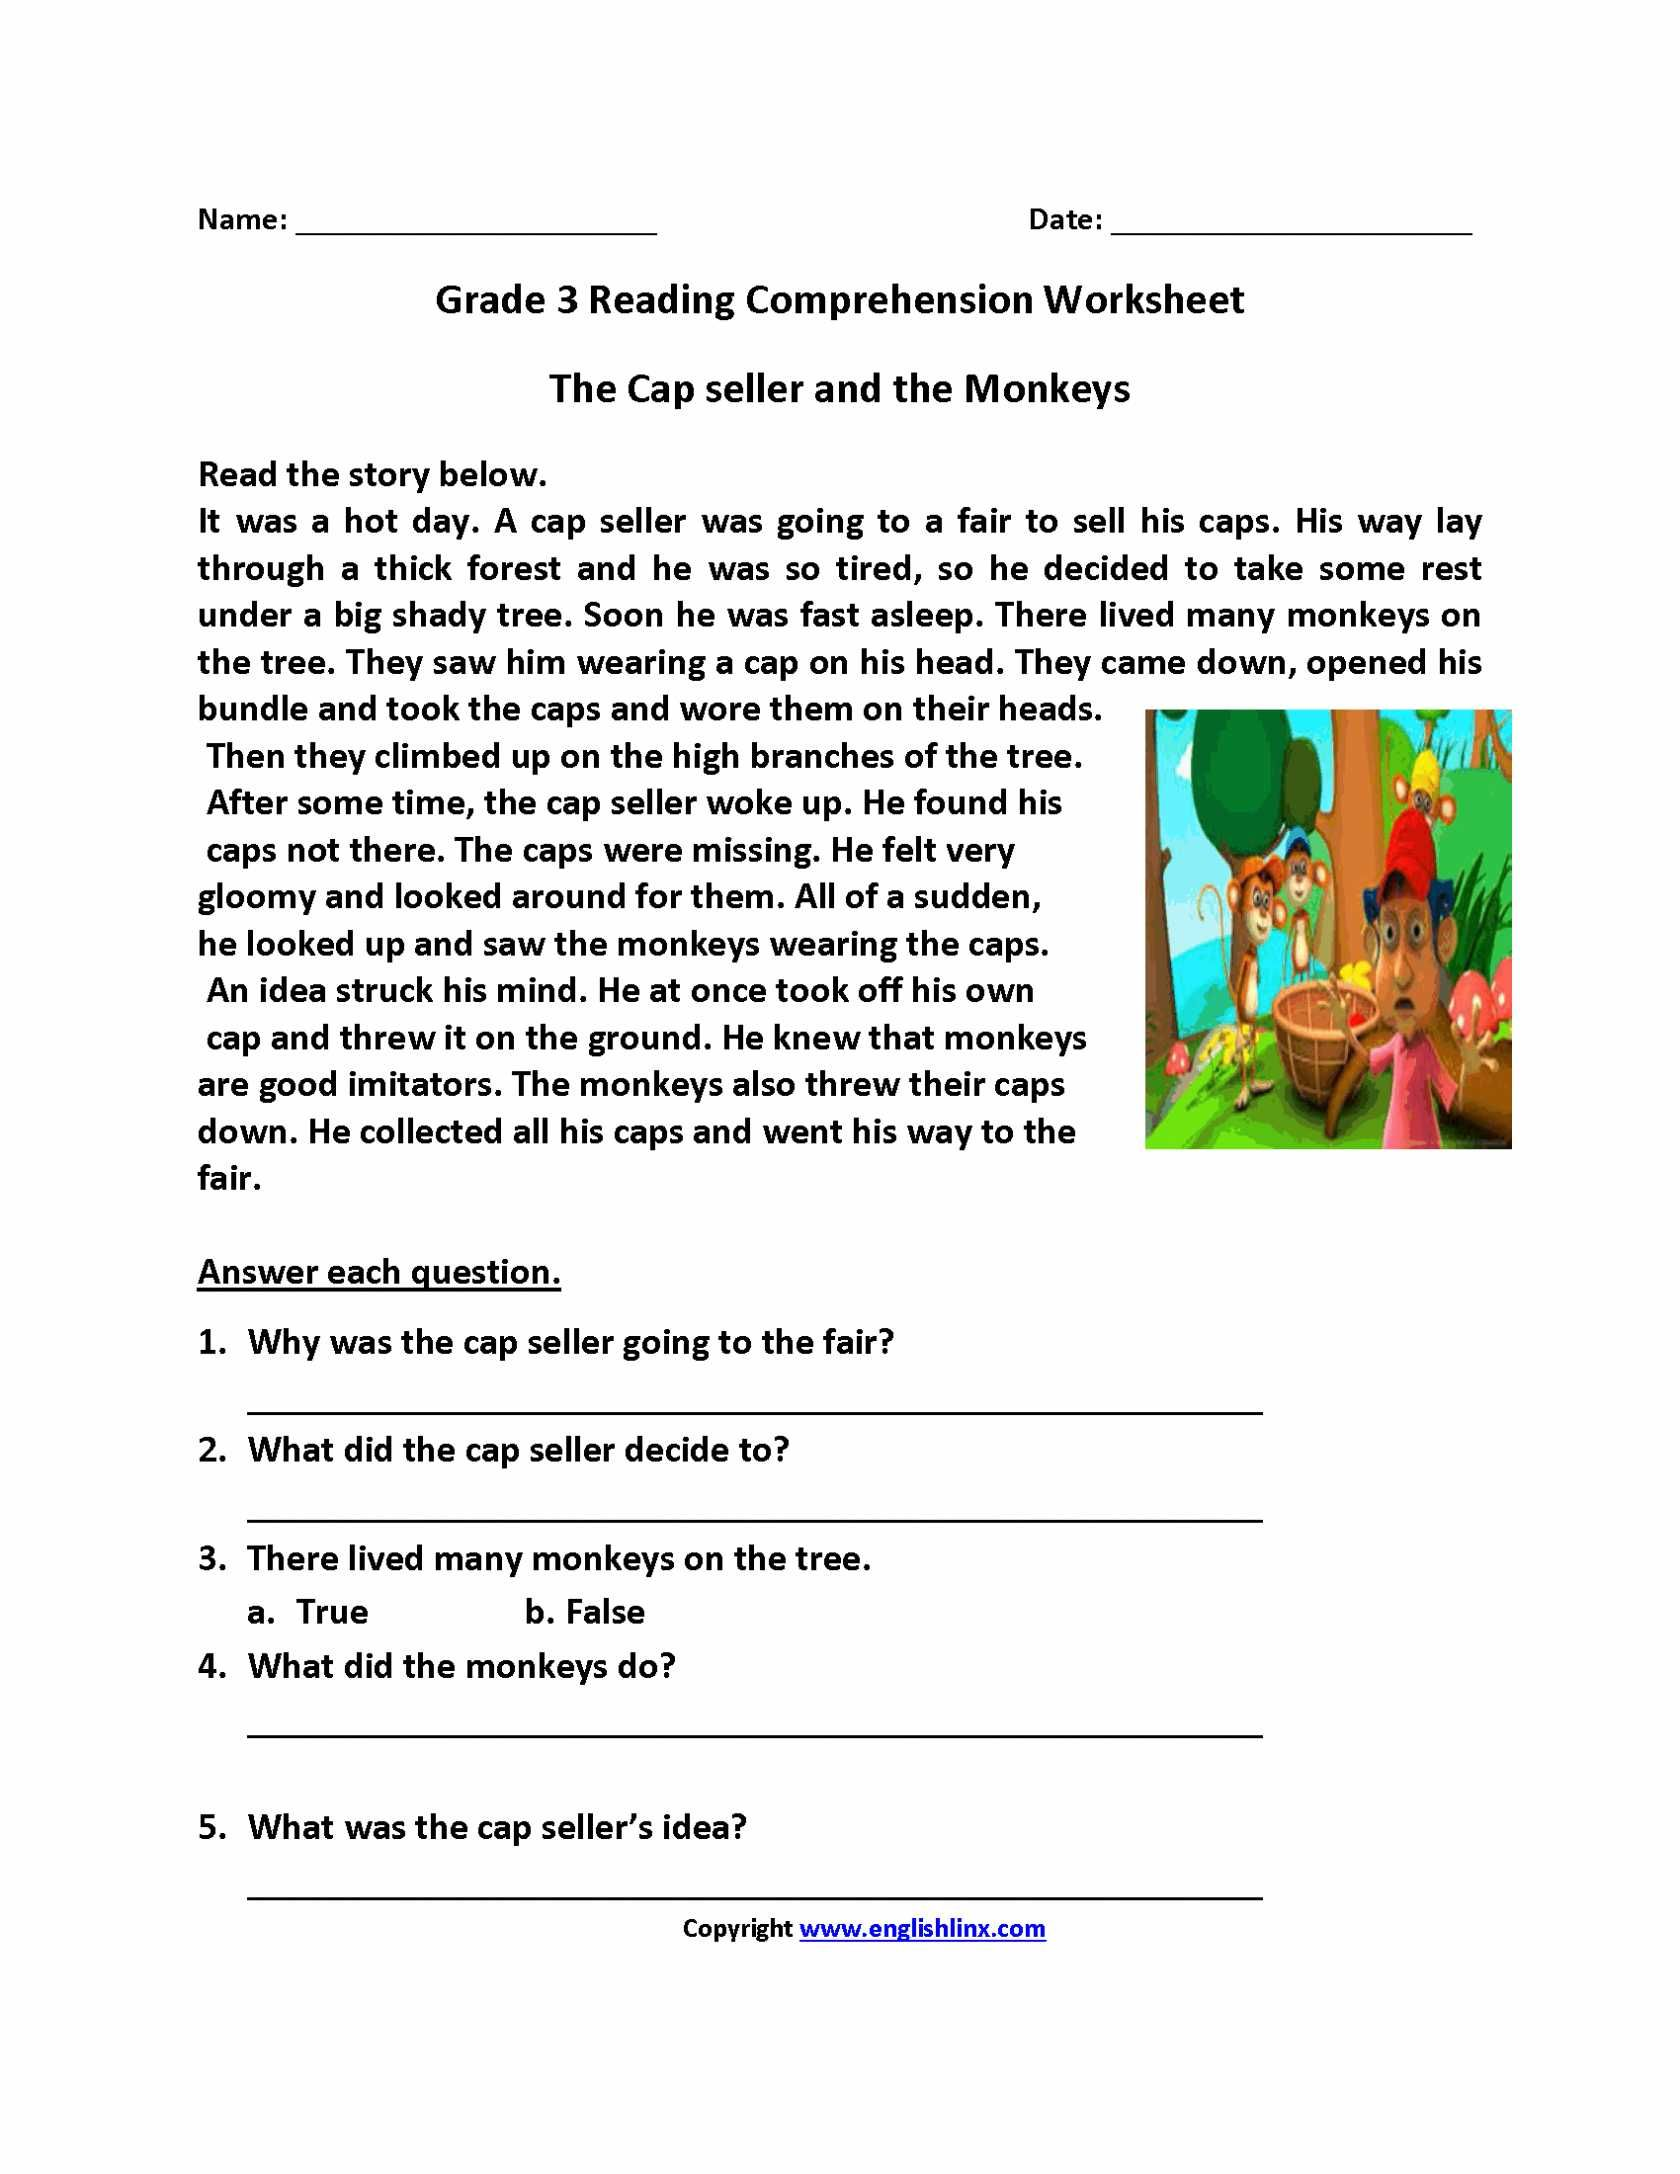 Pin by Amber Jawaid on My saves in 2020   3rd grade reading comprehension  worksheets [ 2174 x 1680 Pixel ]